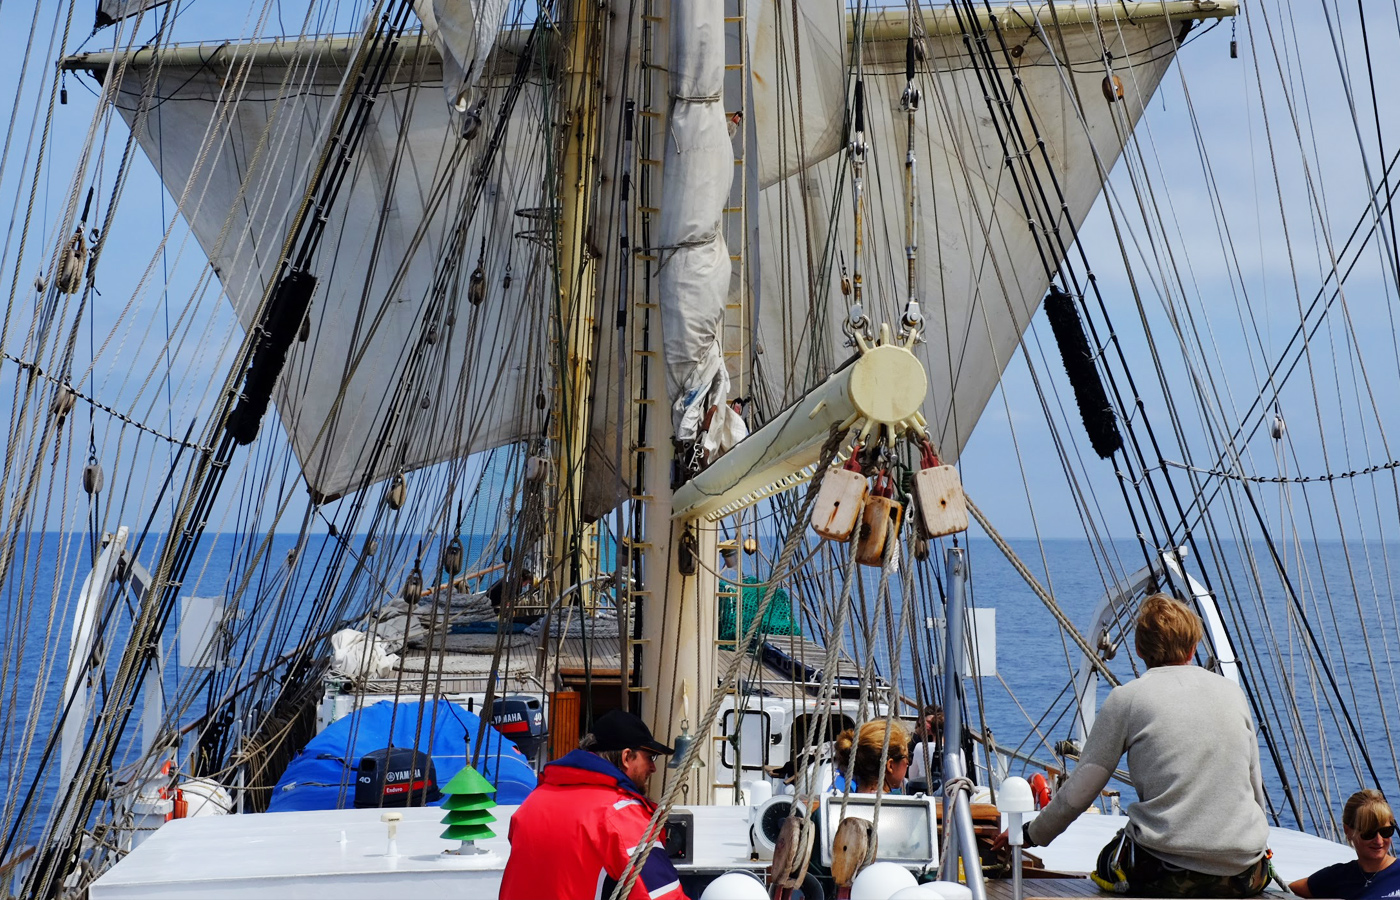 Image of crew on a sailing ship. Image links to Sail for teachers.